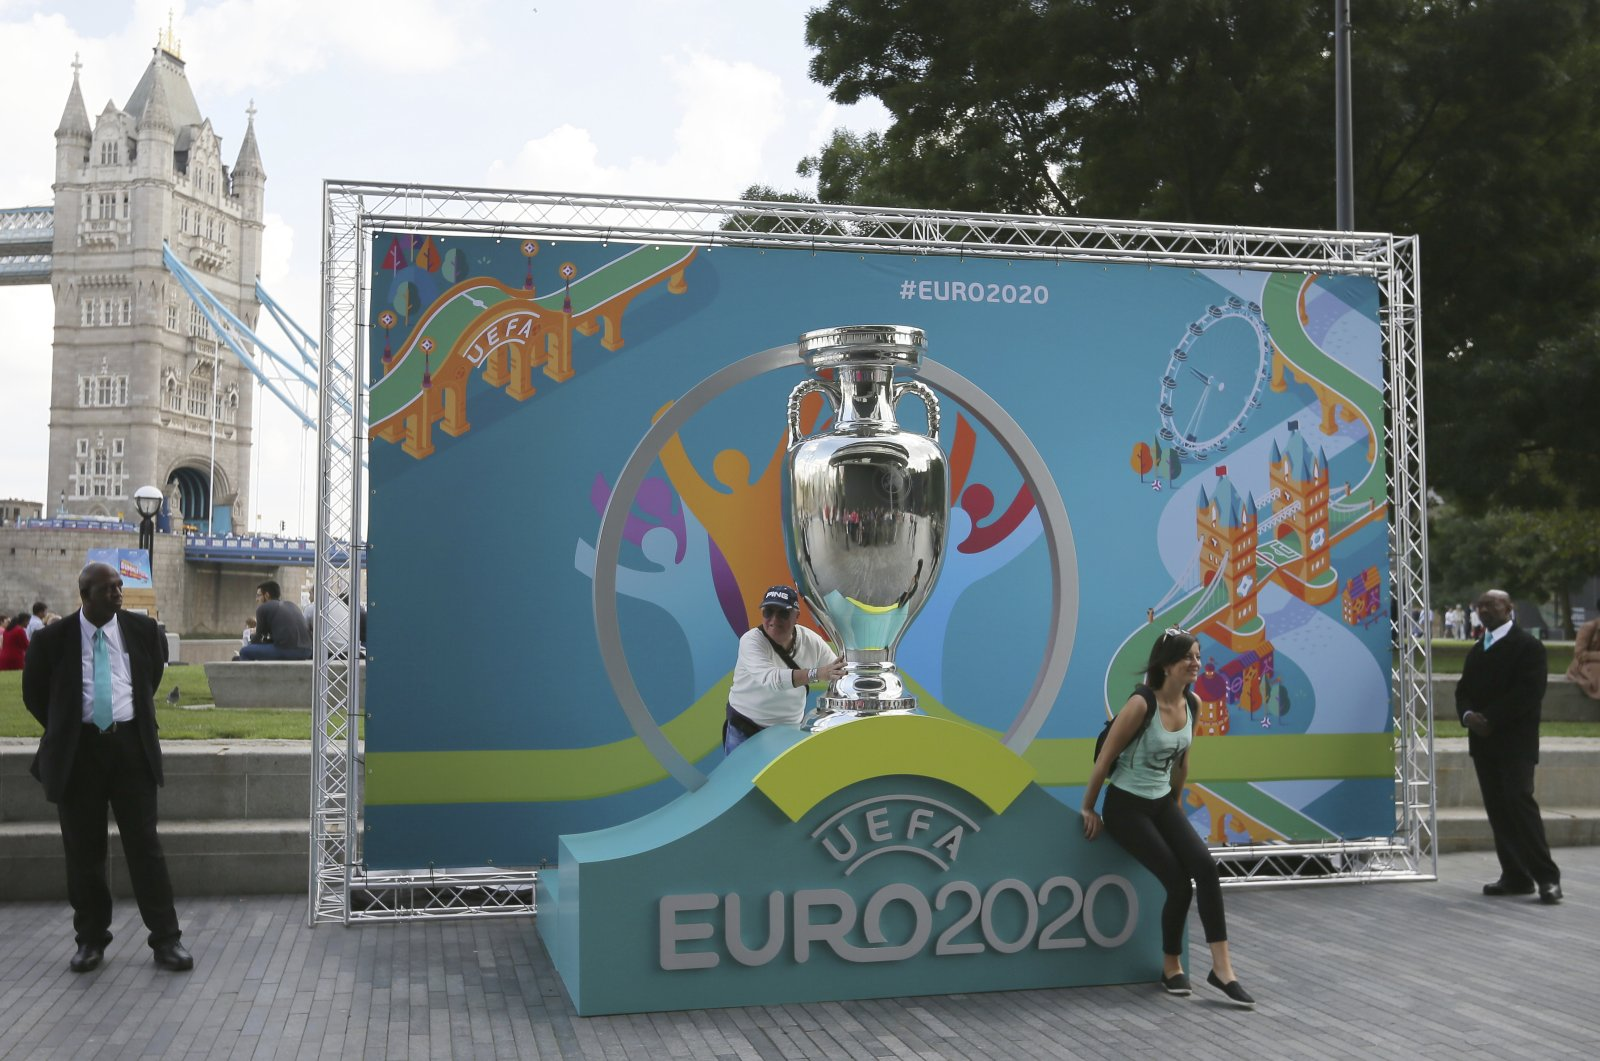 People pose with mockup Euro 2020 trophy on display, in London, Britain, Sept. 21, 2016. (AP Photo)